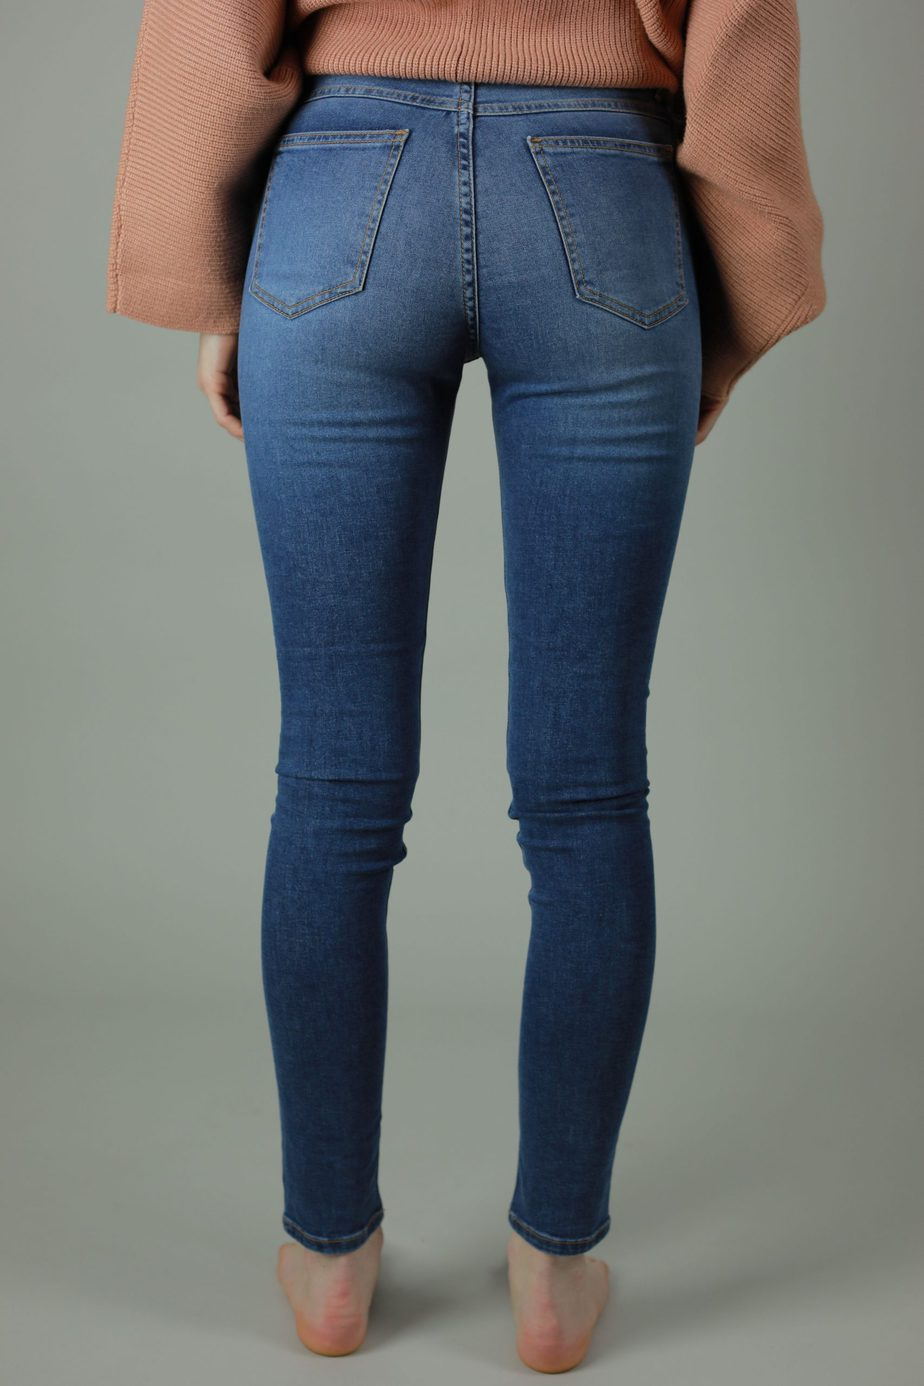 Our High waist Kaila collection are 98% cotton, 2% Lycra. The Kaila New York jean is for the those who are looking for comfort, timeless style and a high quality jean so you'll never have to compromise. Back view.